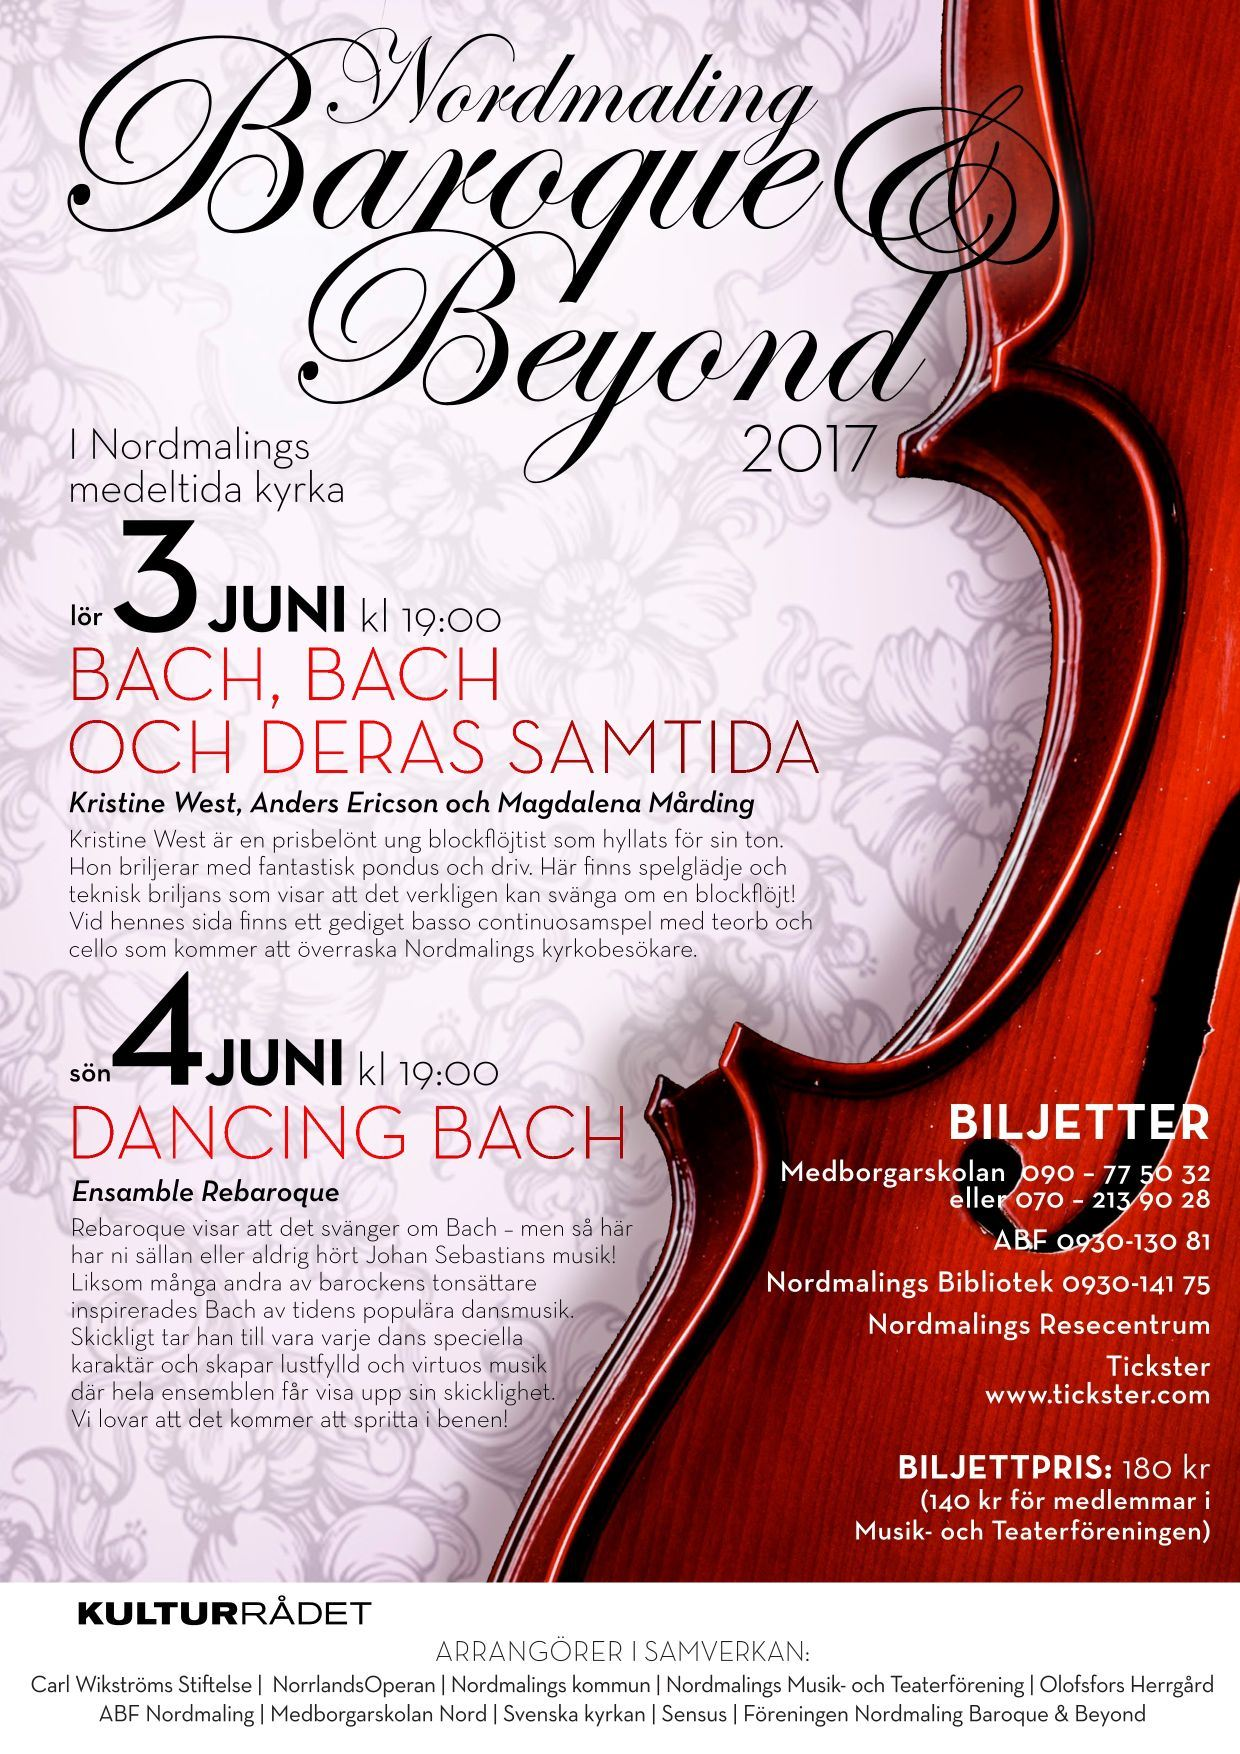 Nordmaling Baroque and Beyond 2017